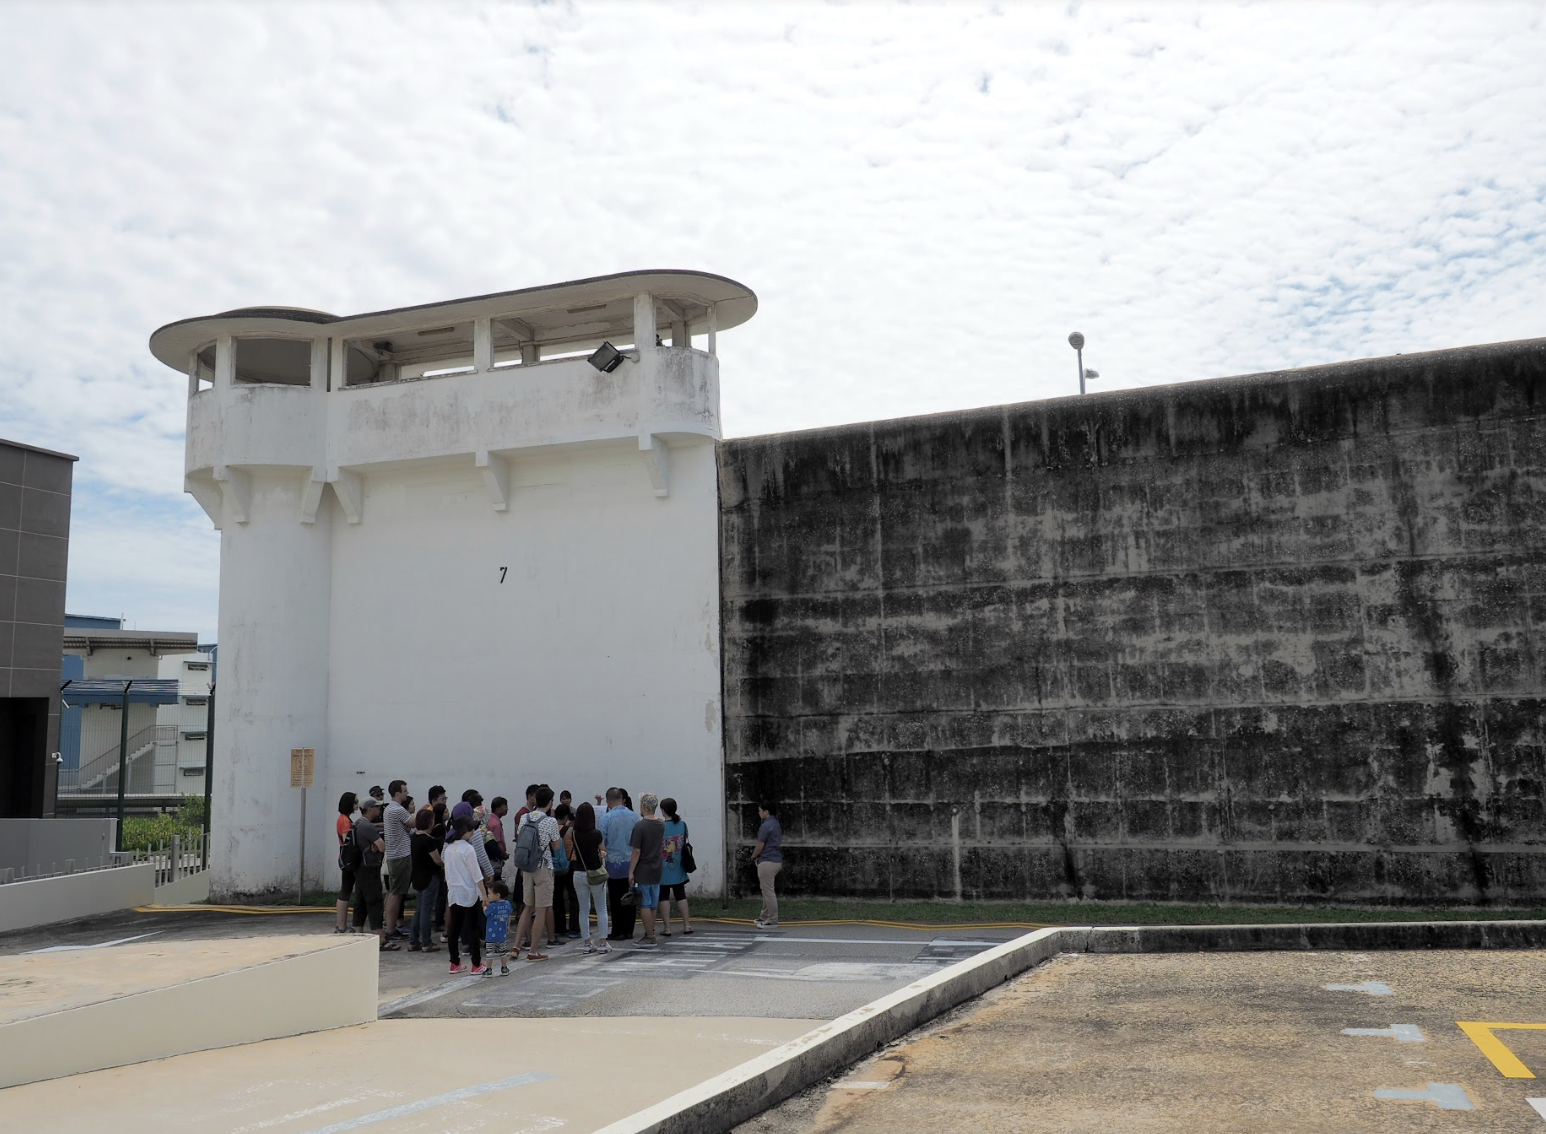 You can sign up for tours of Changi Prison Entrance Gate, Wall and Turrets. Photo courtesy: NHB